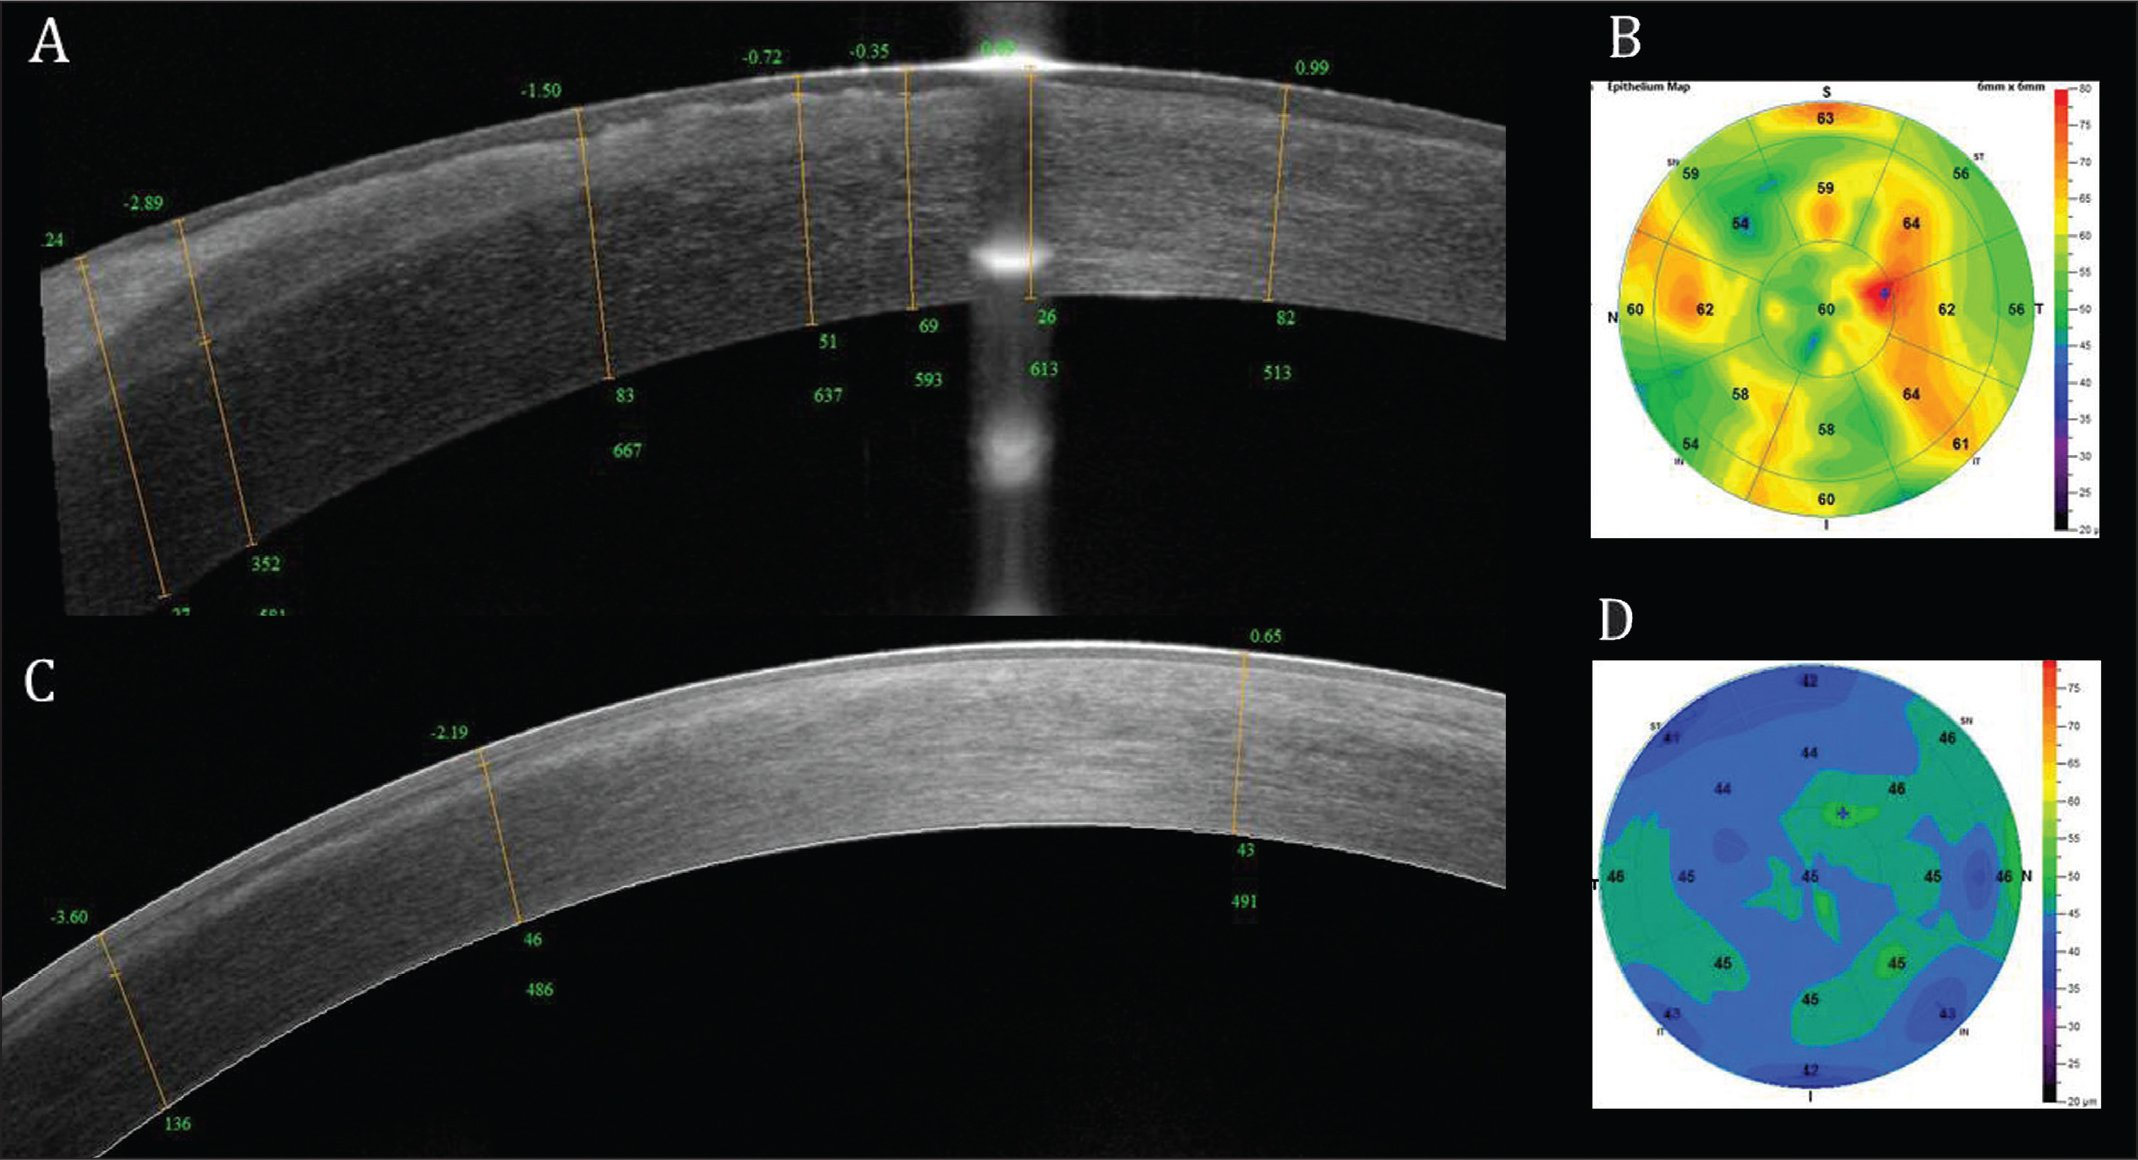 (A–B) Preoperative and (C–D) postoperative anterior segment optical coherence tomography and epithelial maps. Presence, depth, and thickness of the subepithelial membrane is easily detected and measured. Note stromal opacity extending down to 352 μm.